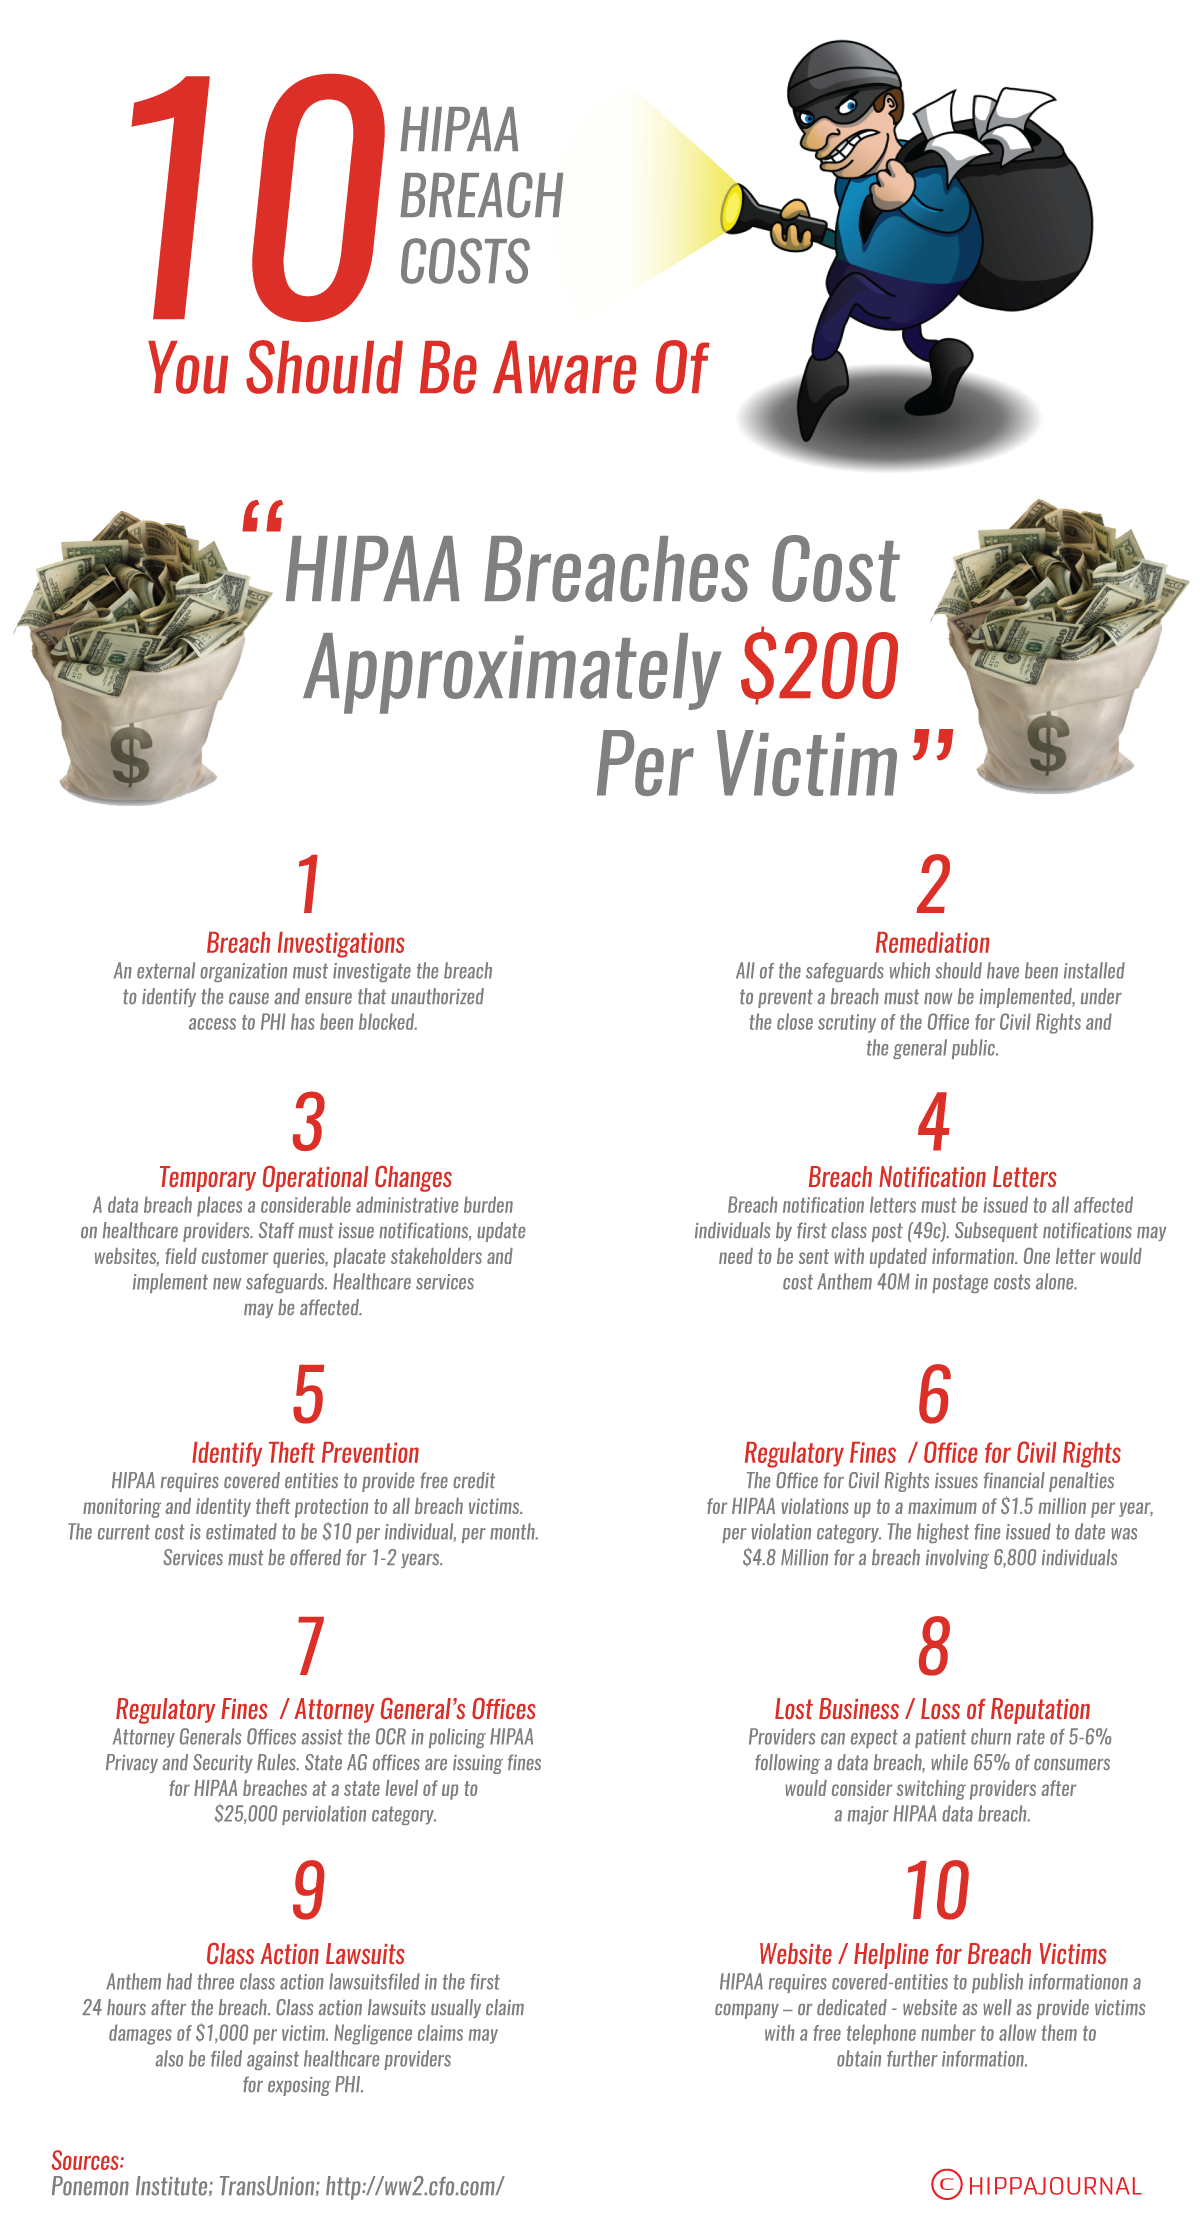 hipaajournal hidden data breach costs